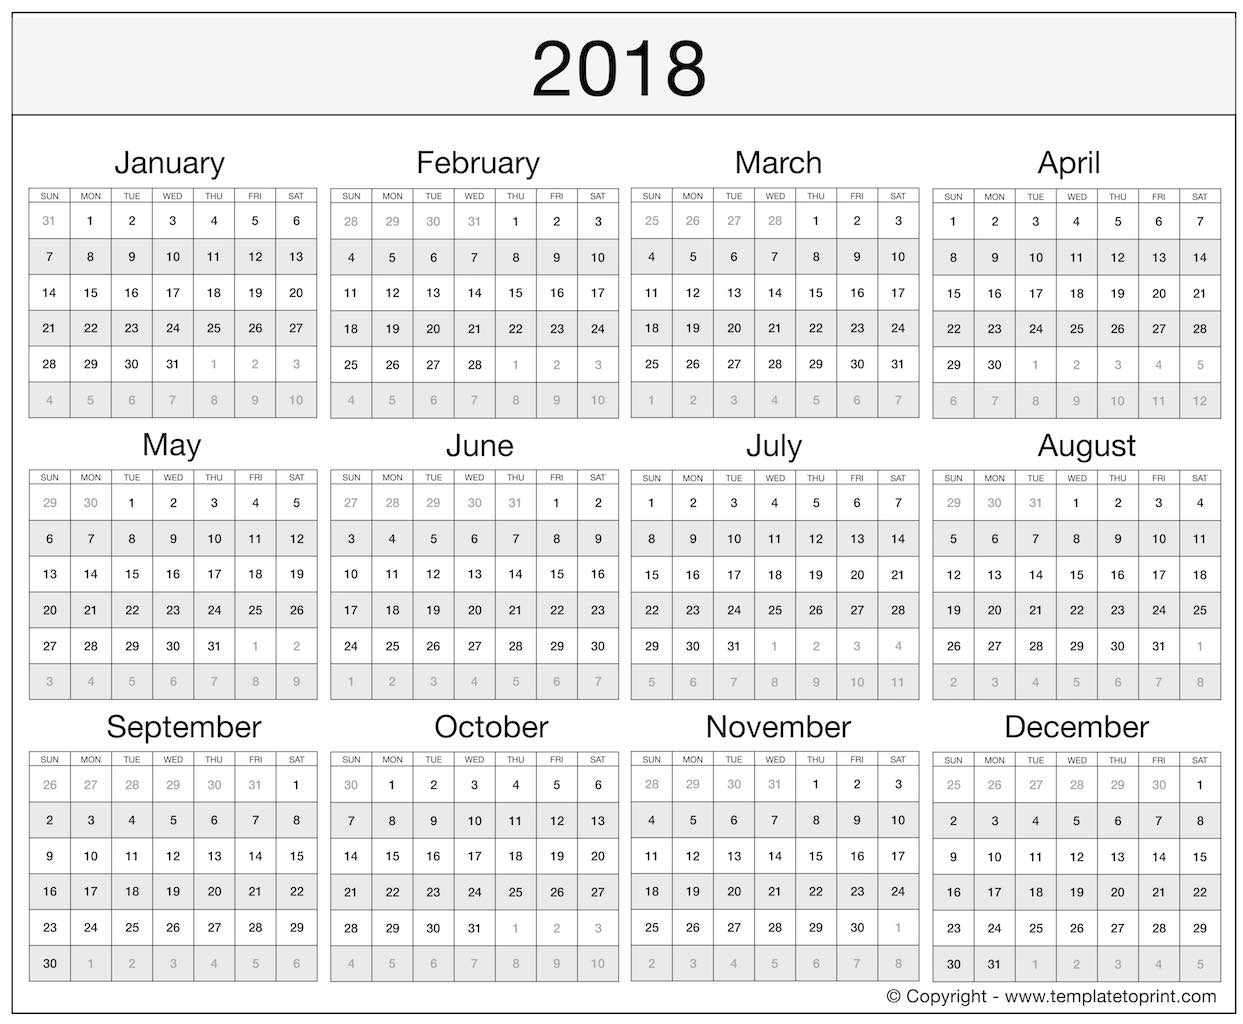 monthly calendar template excel 2018 2018 Yearly Calendar Excel Template erdferdf